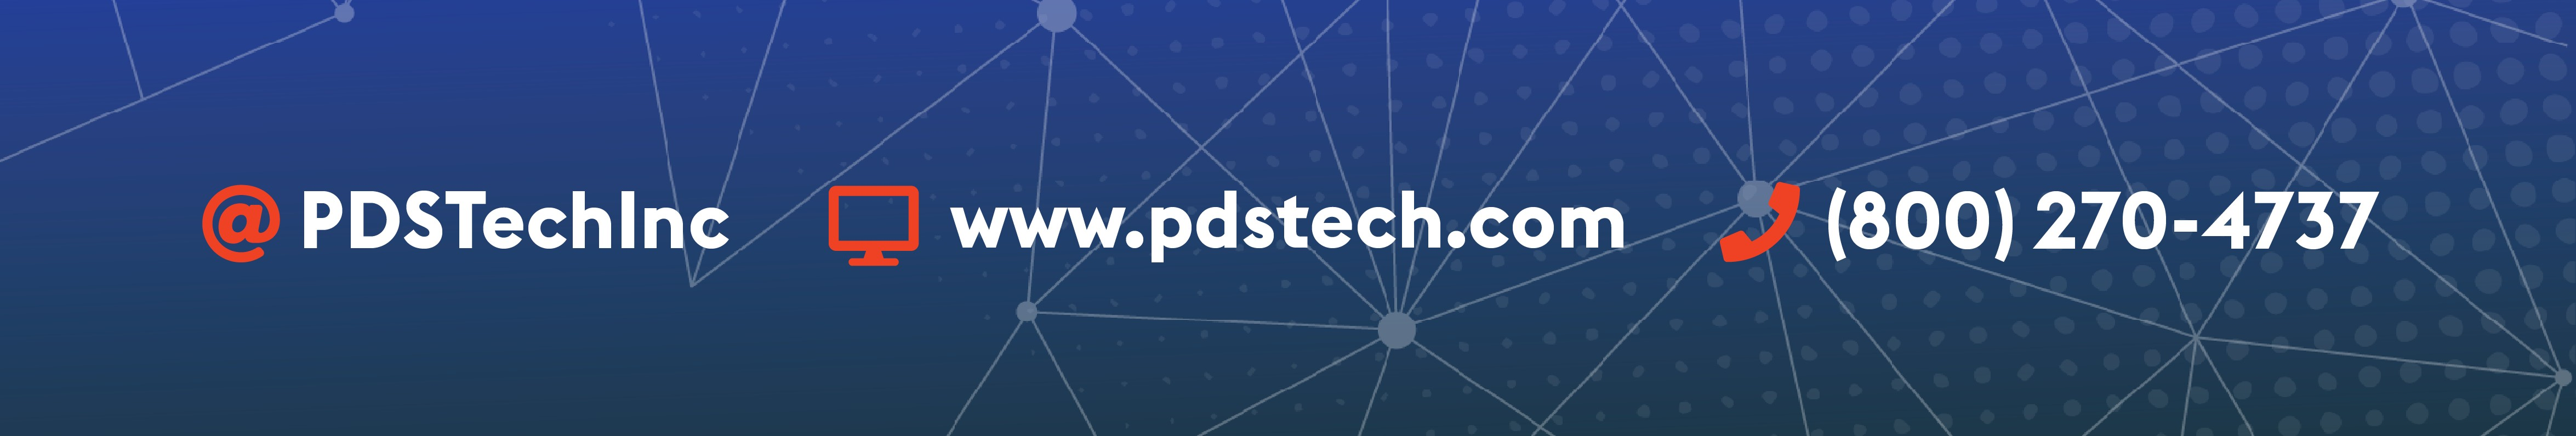 Pds Tech Inc Linkedin